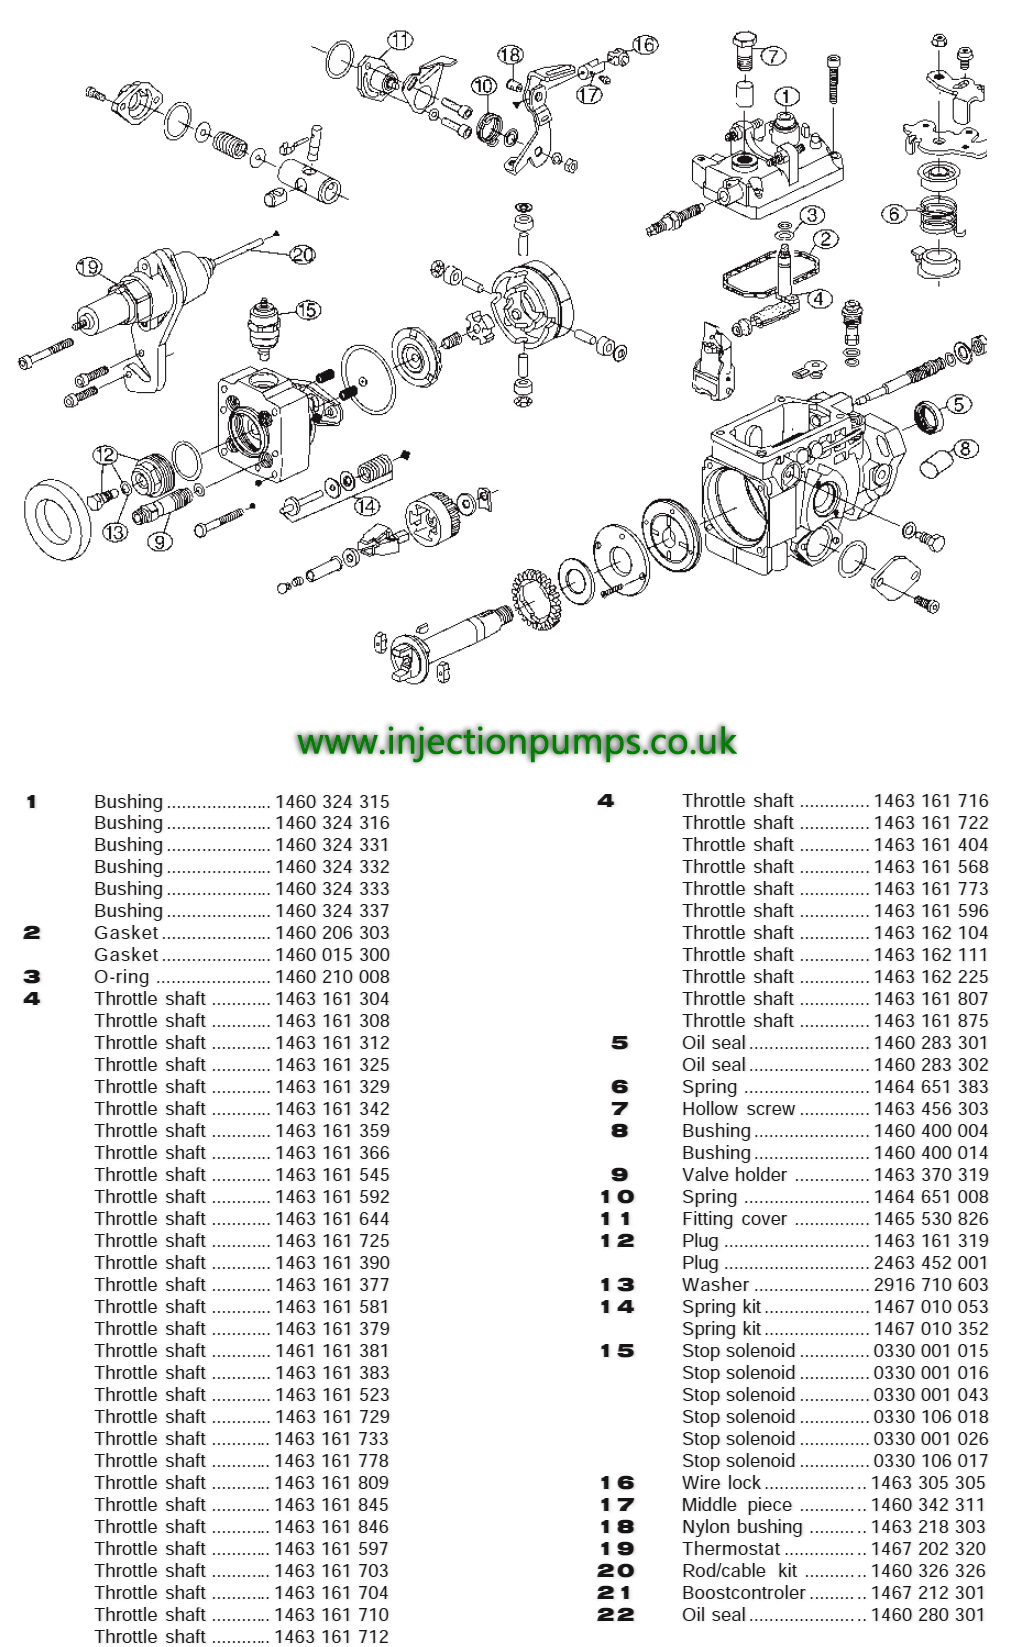 Vp44 Injection Pump >> Exploded diagrams - Diesel Injection Pumps